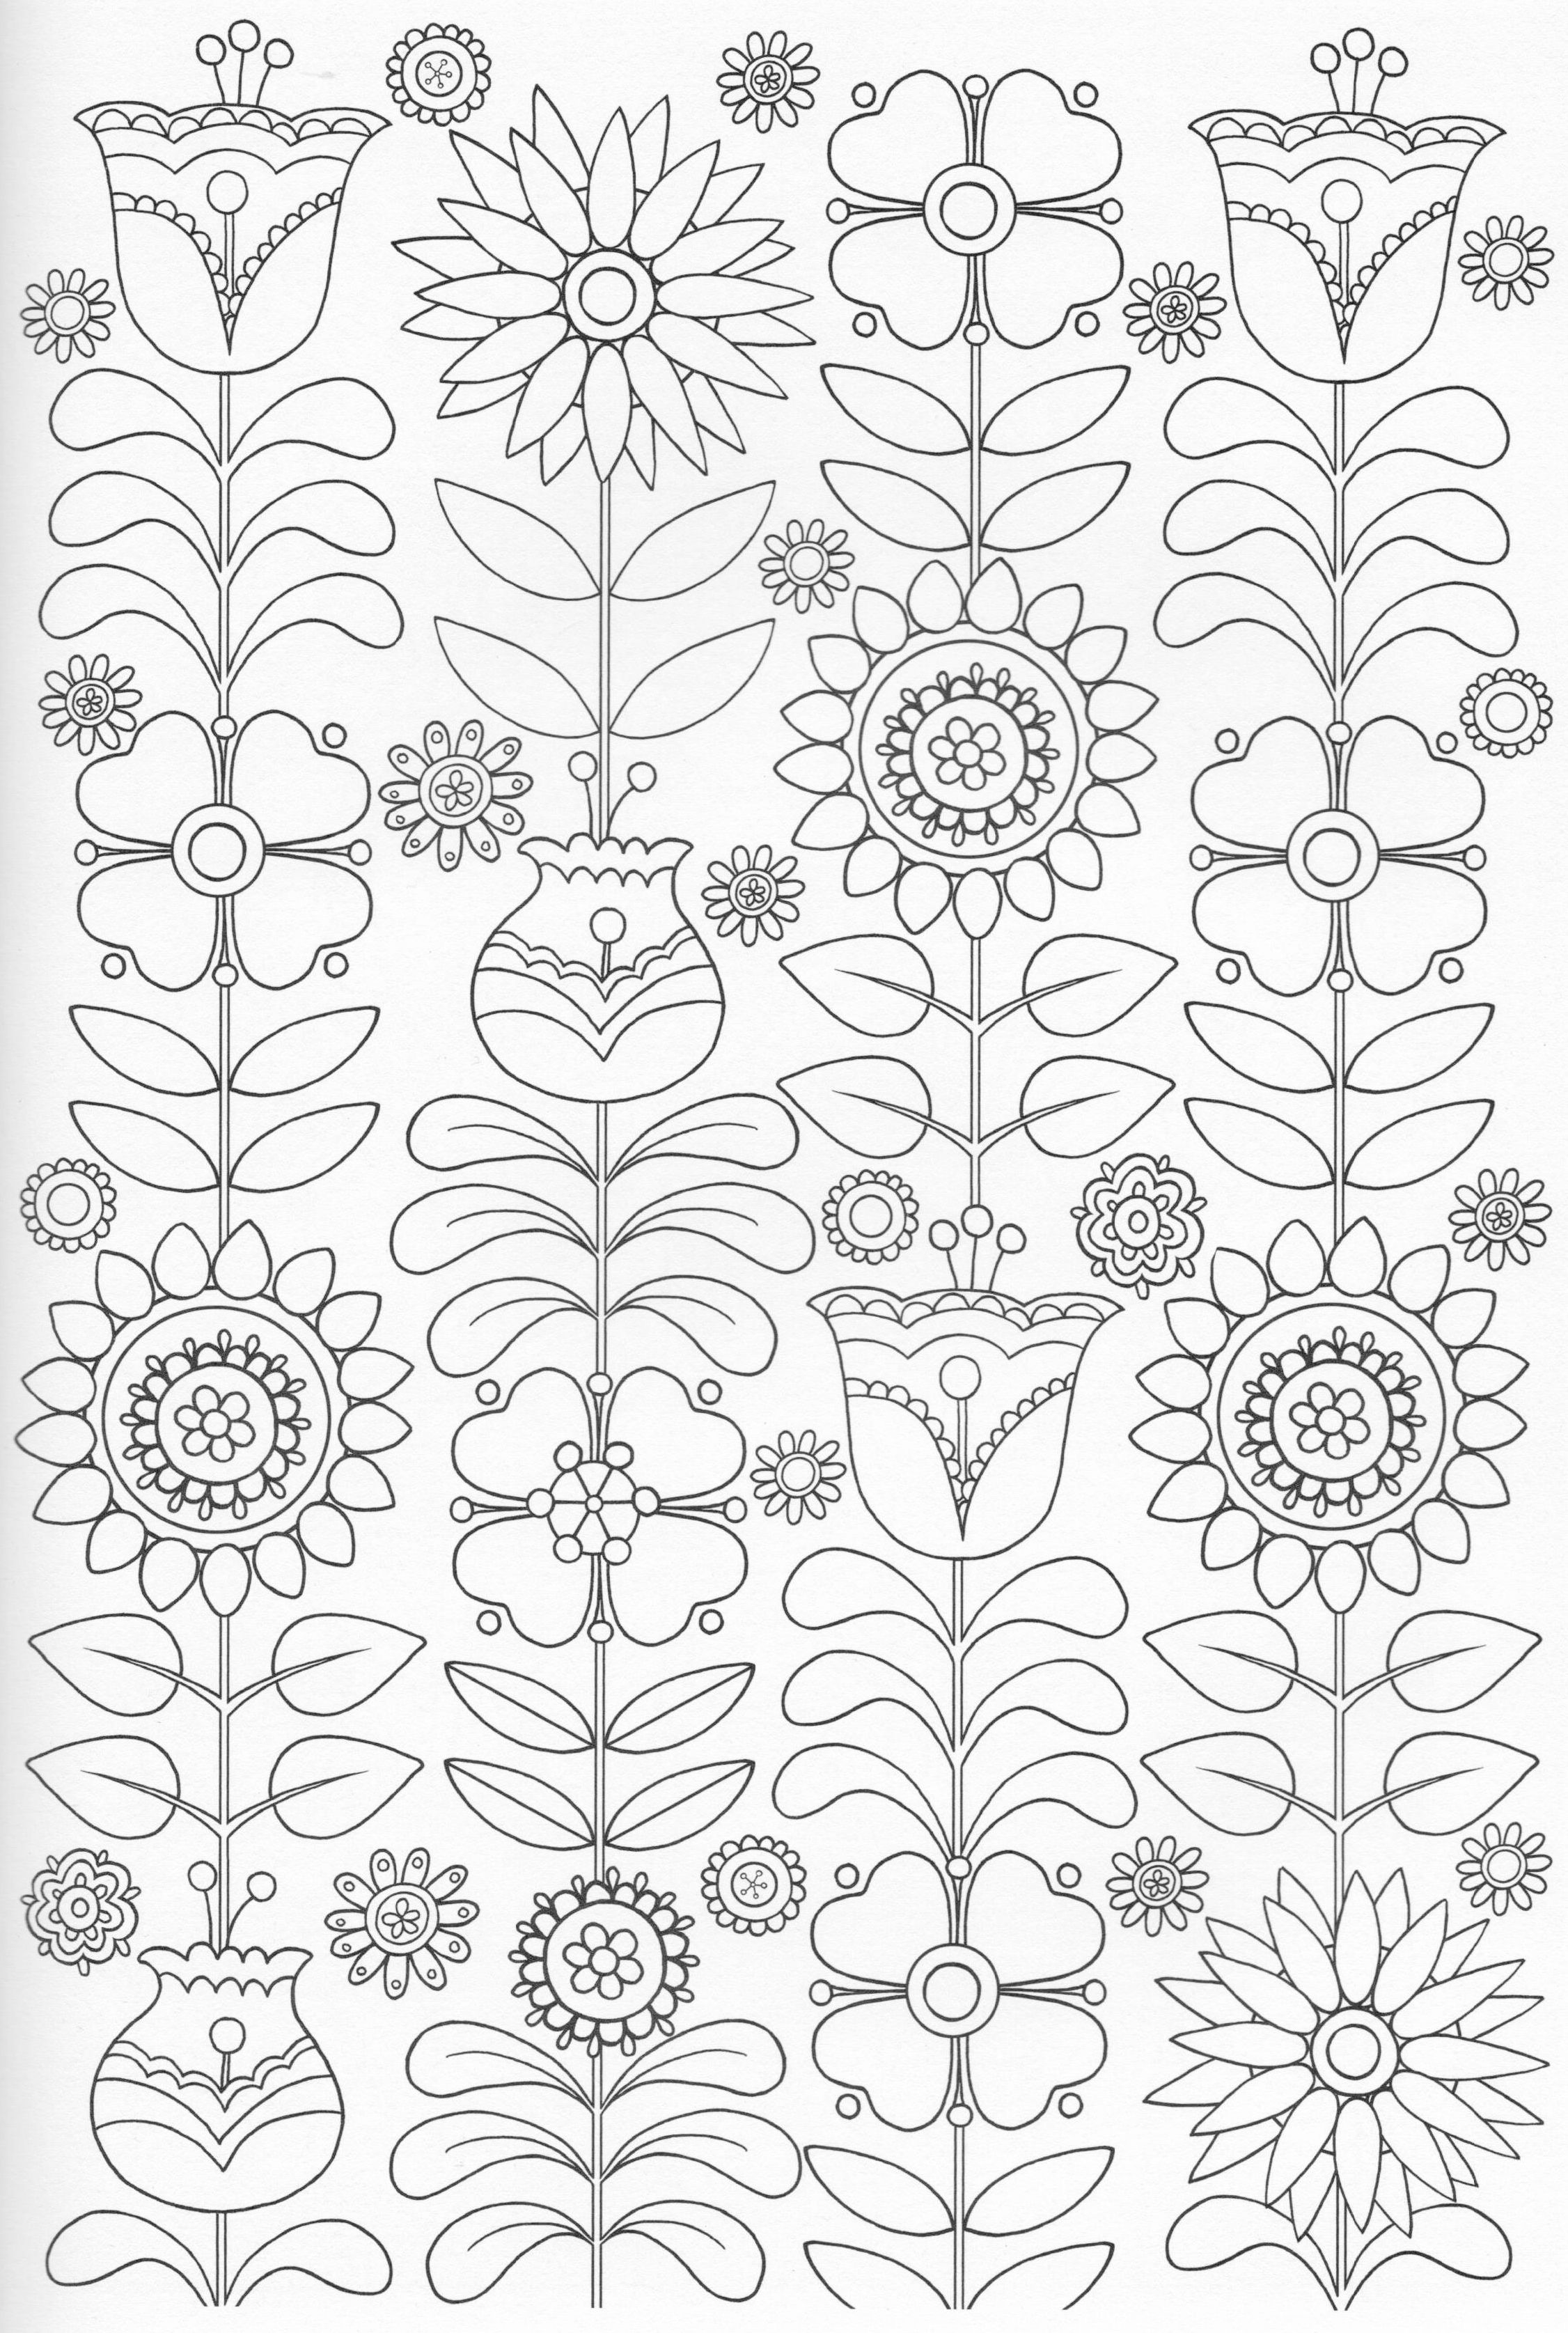 Hungarian Folk Art Coloring Pages Taken